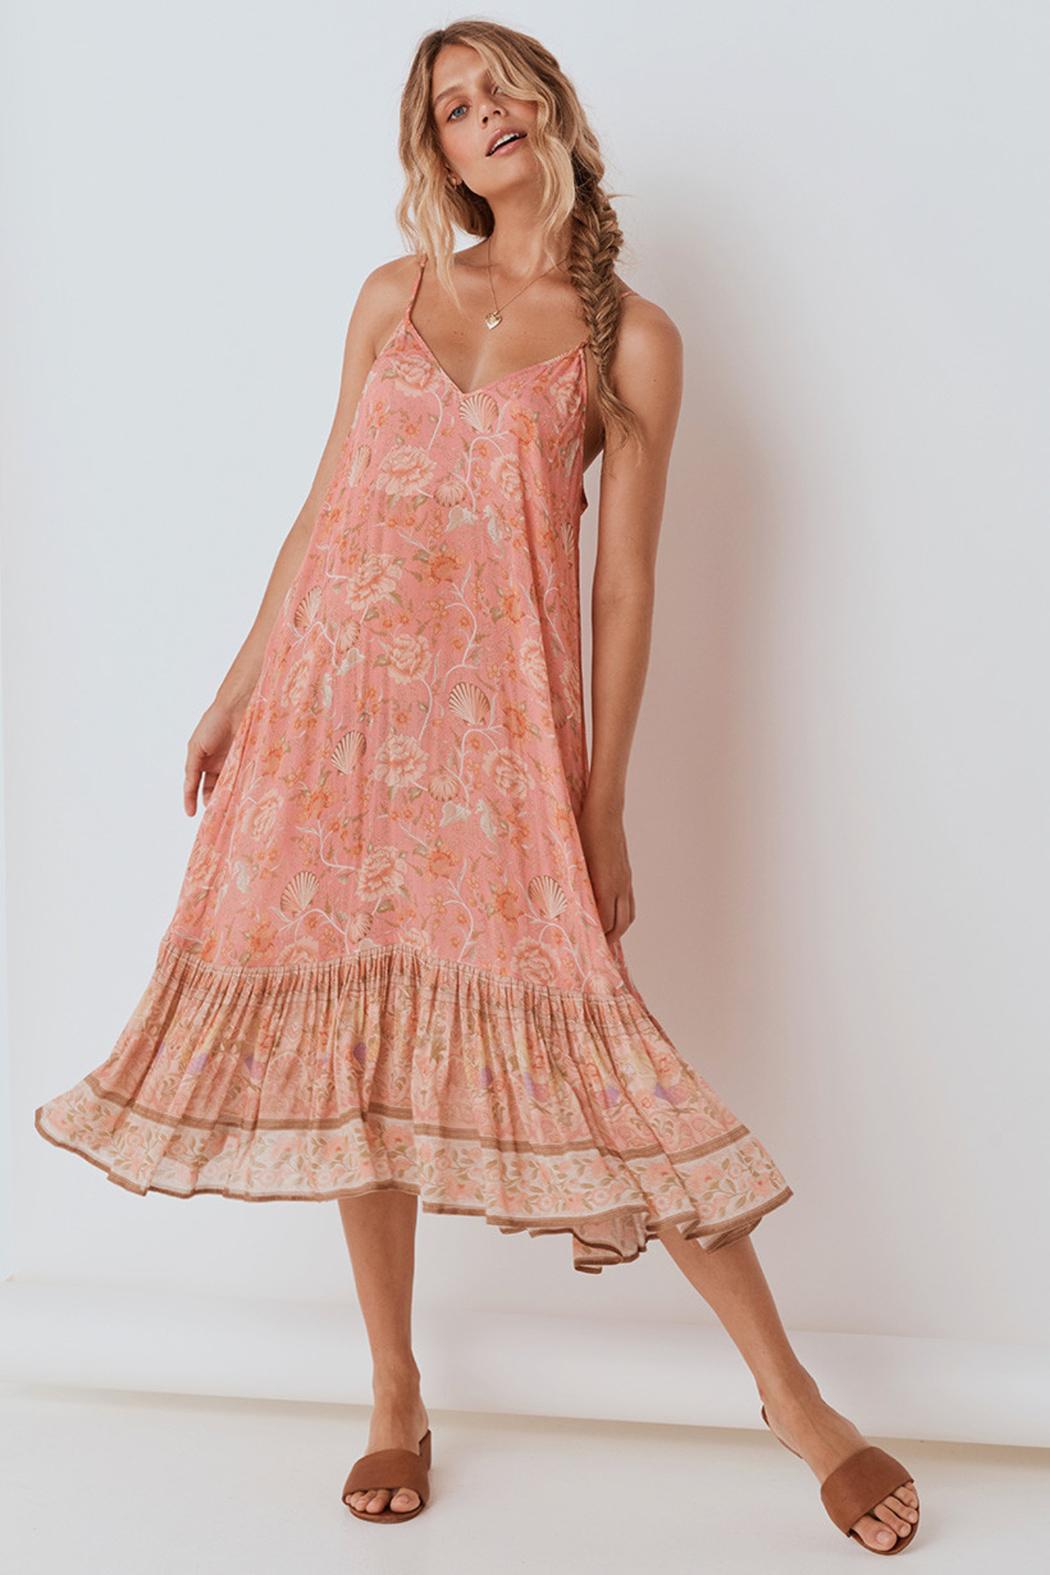 Spell & the Gypsy Collective Seashell Strappy Midi Dress in Coral - Main Image